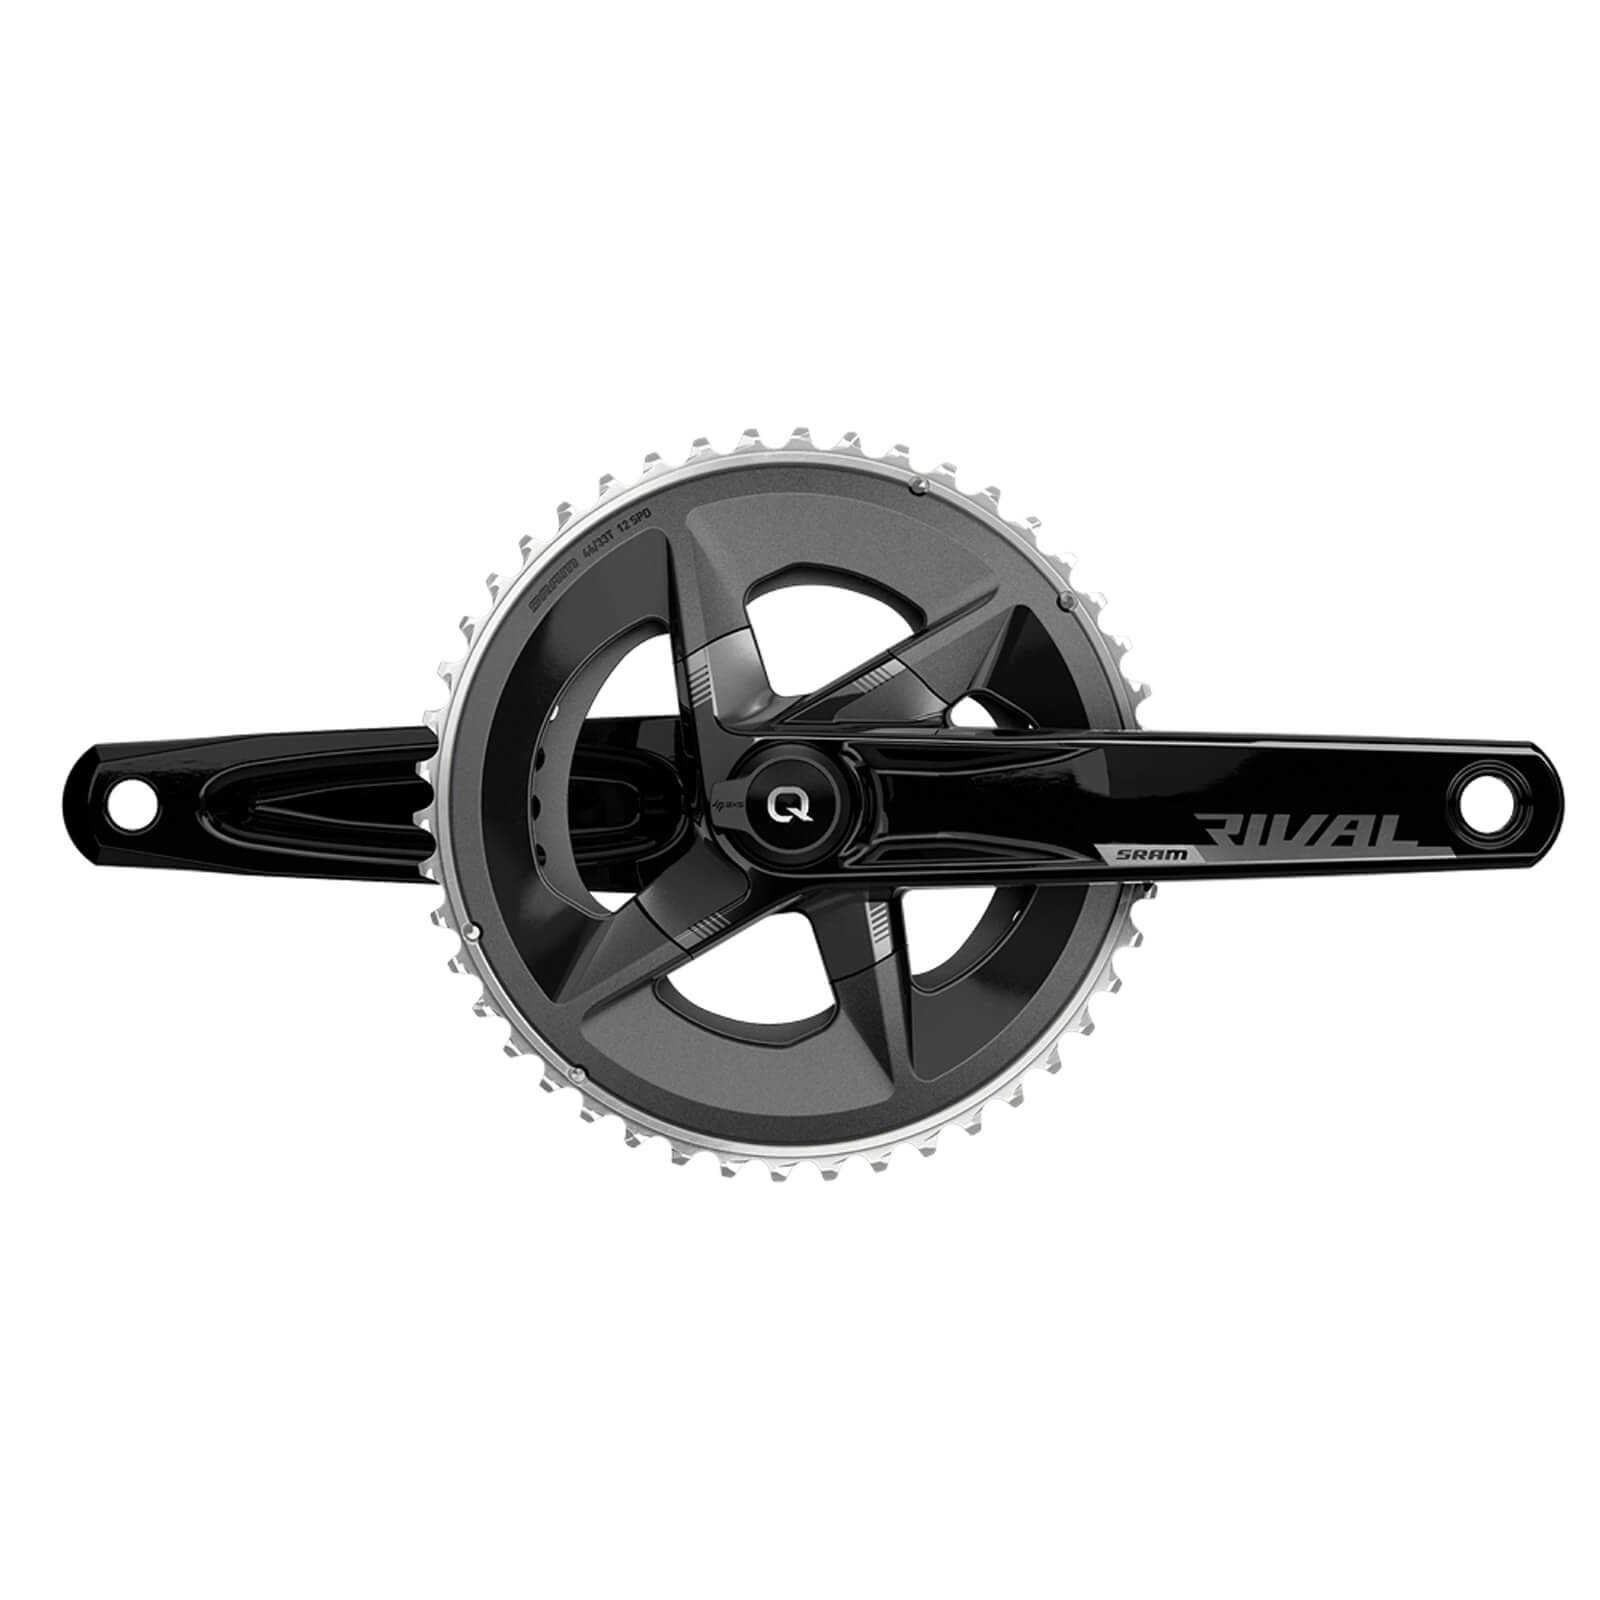 Sram Rival Axs Power Meter Chainset - 46/33 - 170mm